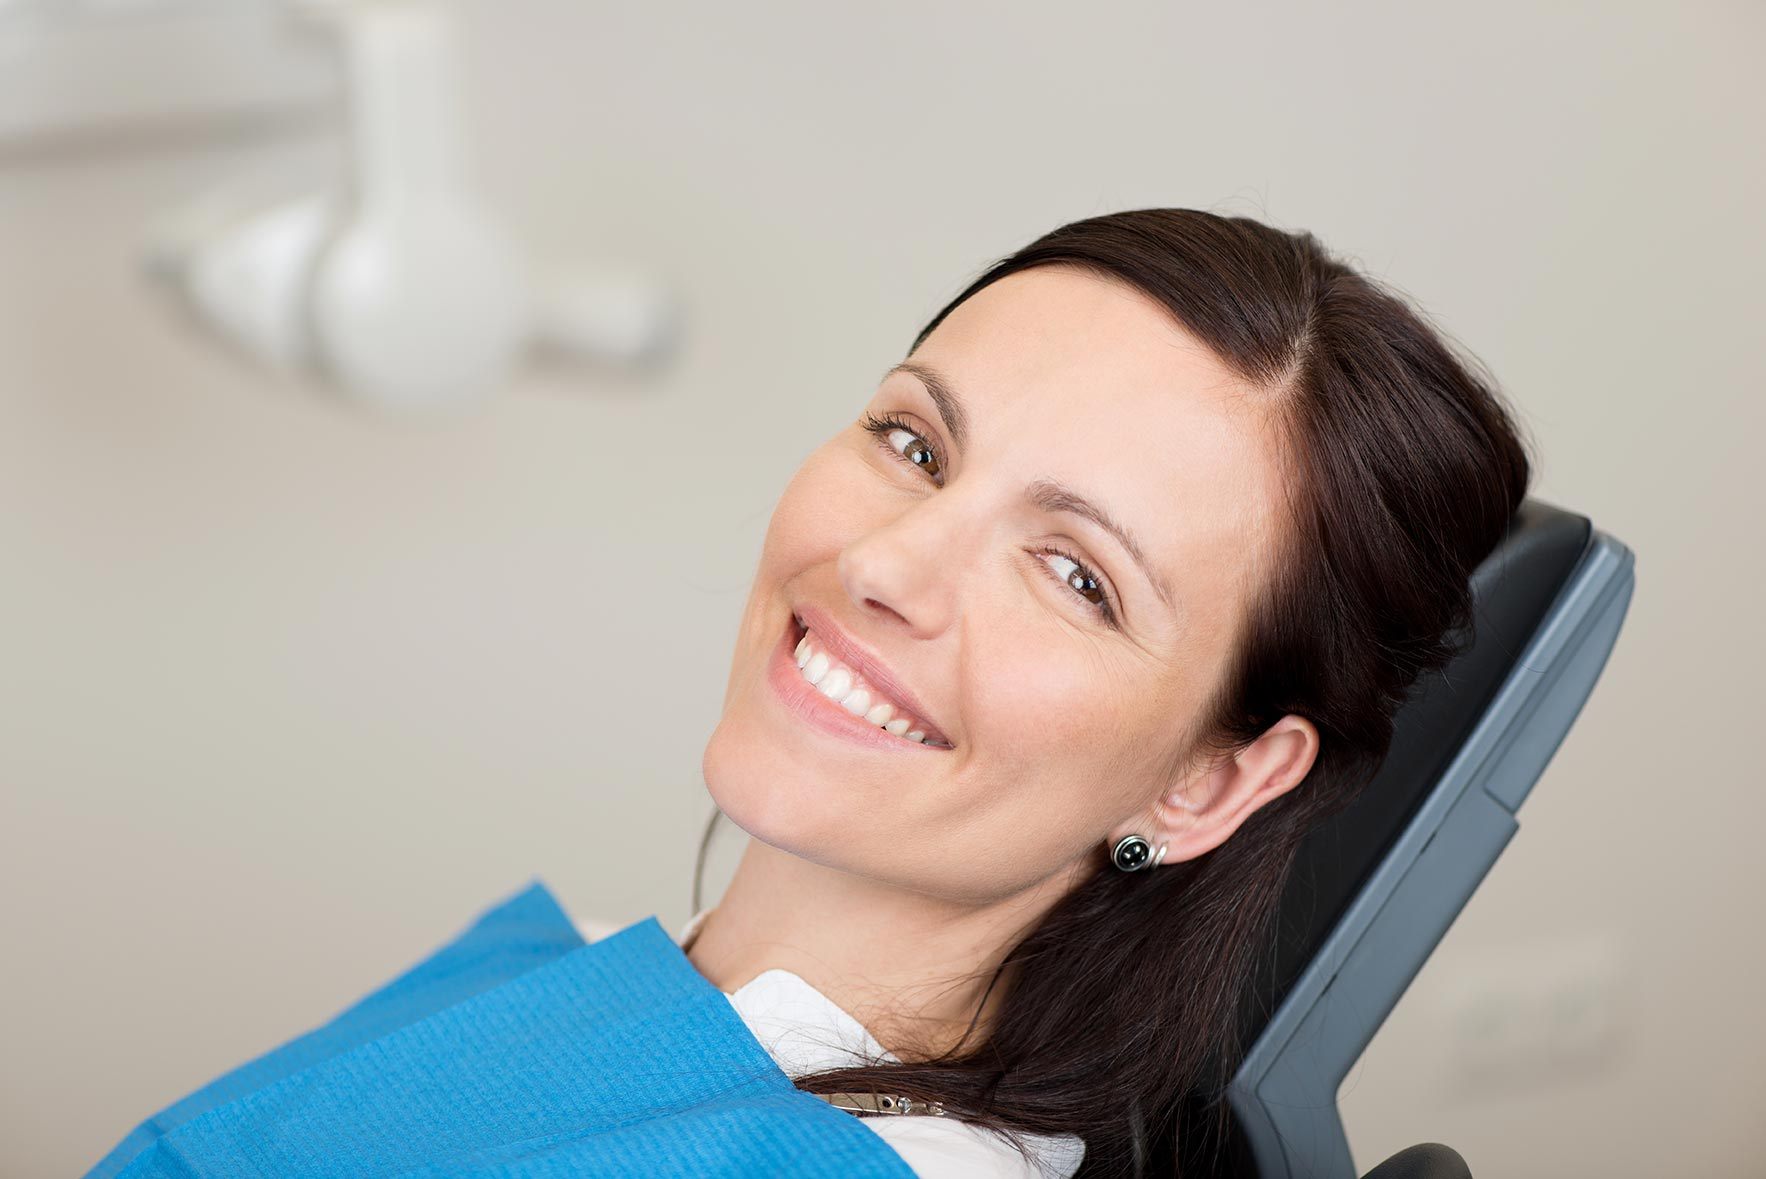 A woman sits in the dentist chair, comfortably awaiting care.